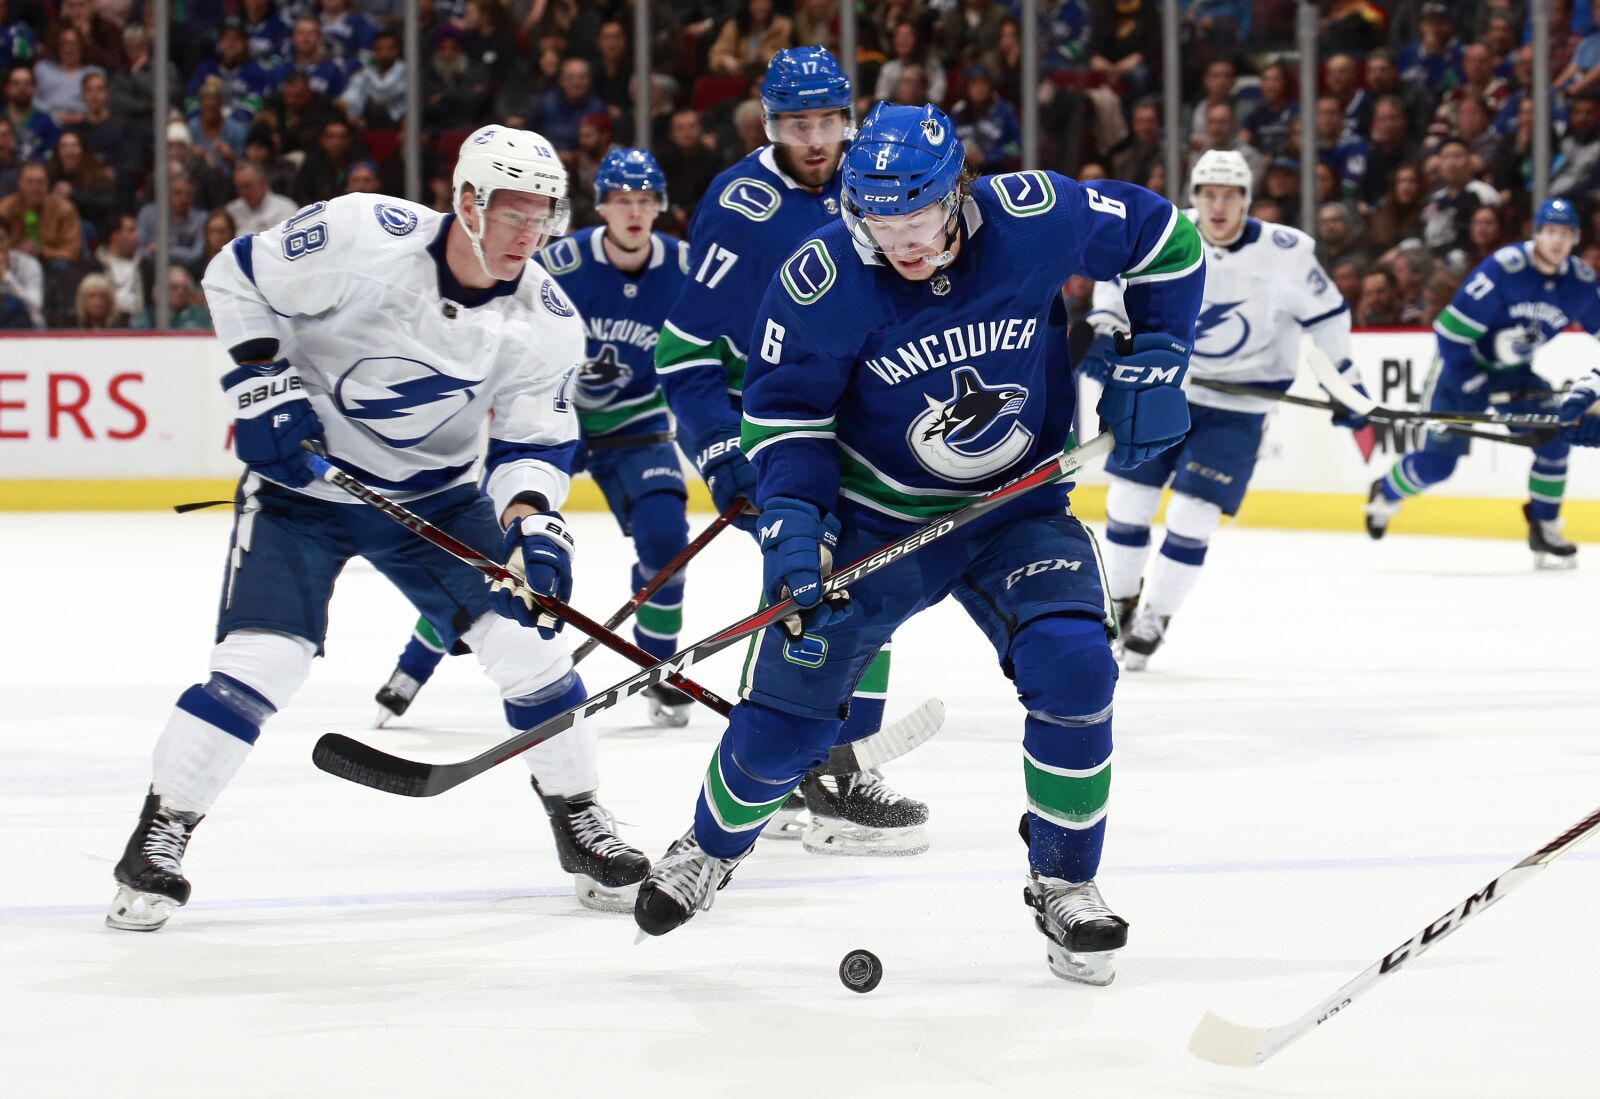 Vancouver Canucks: Tampa Bay Lightning are perfect trade partners